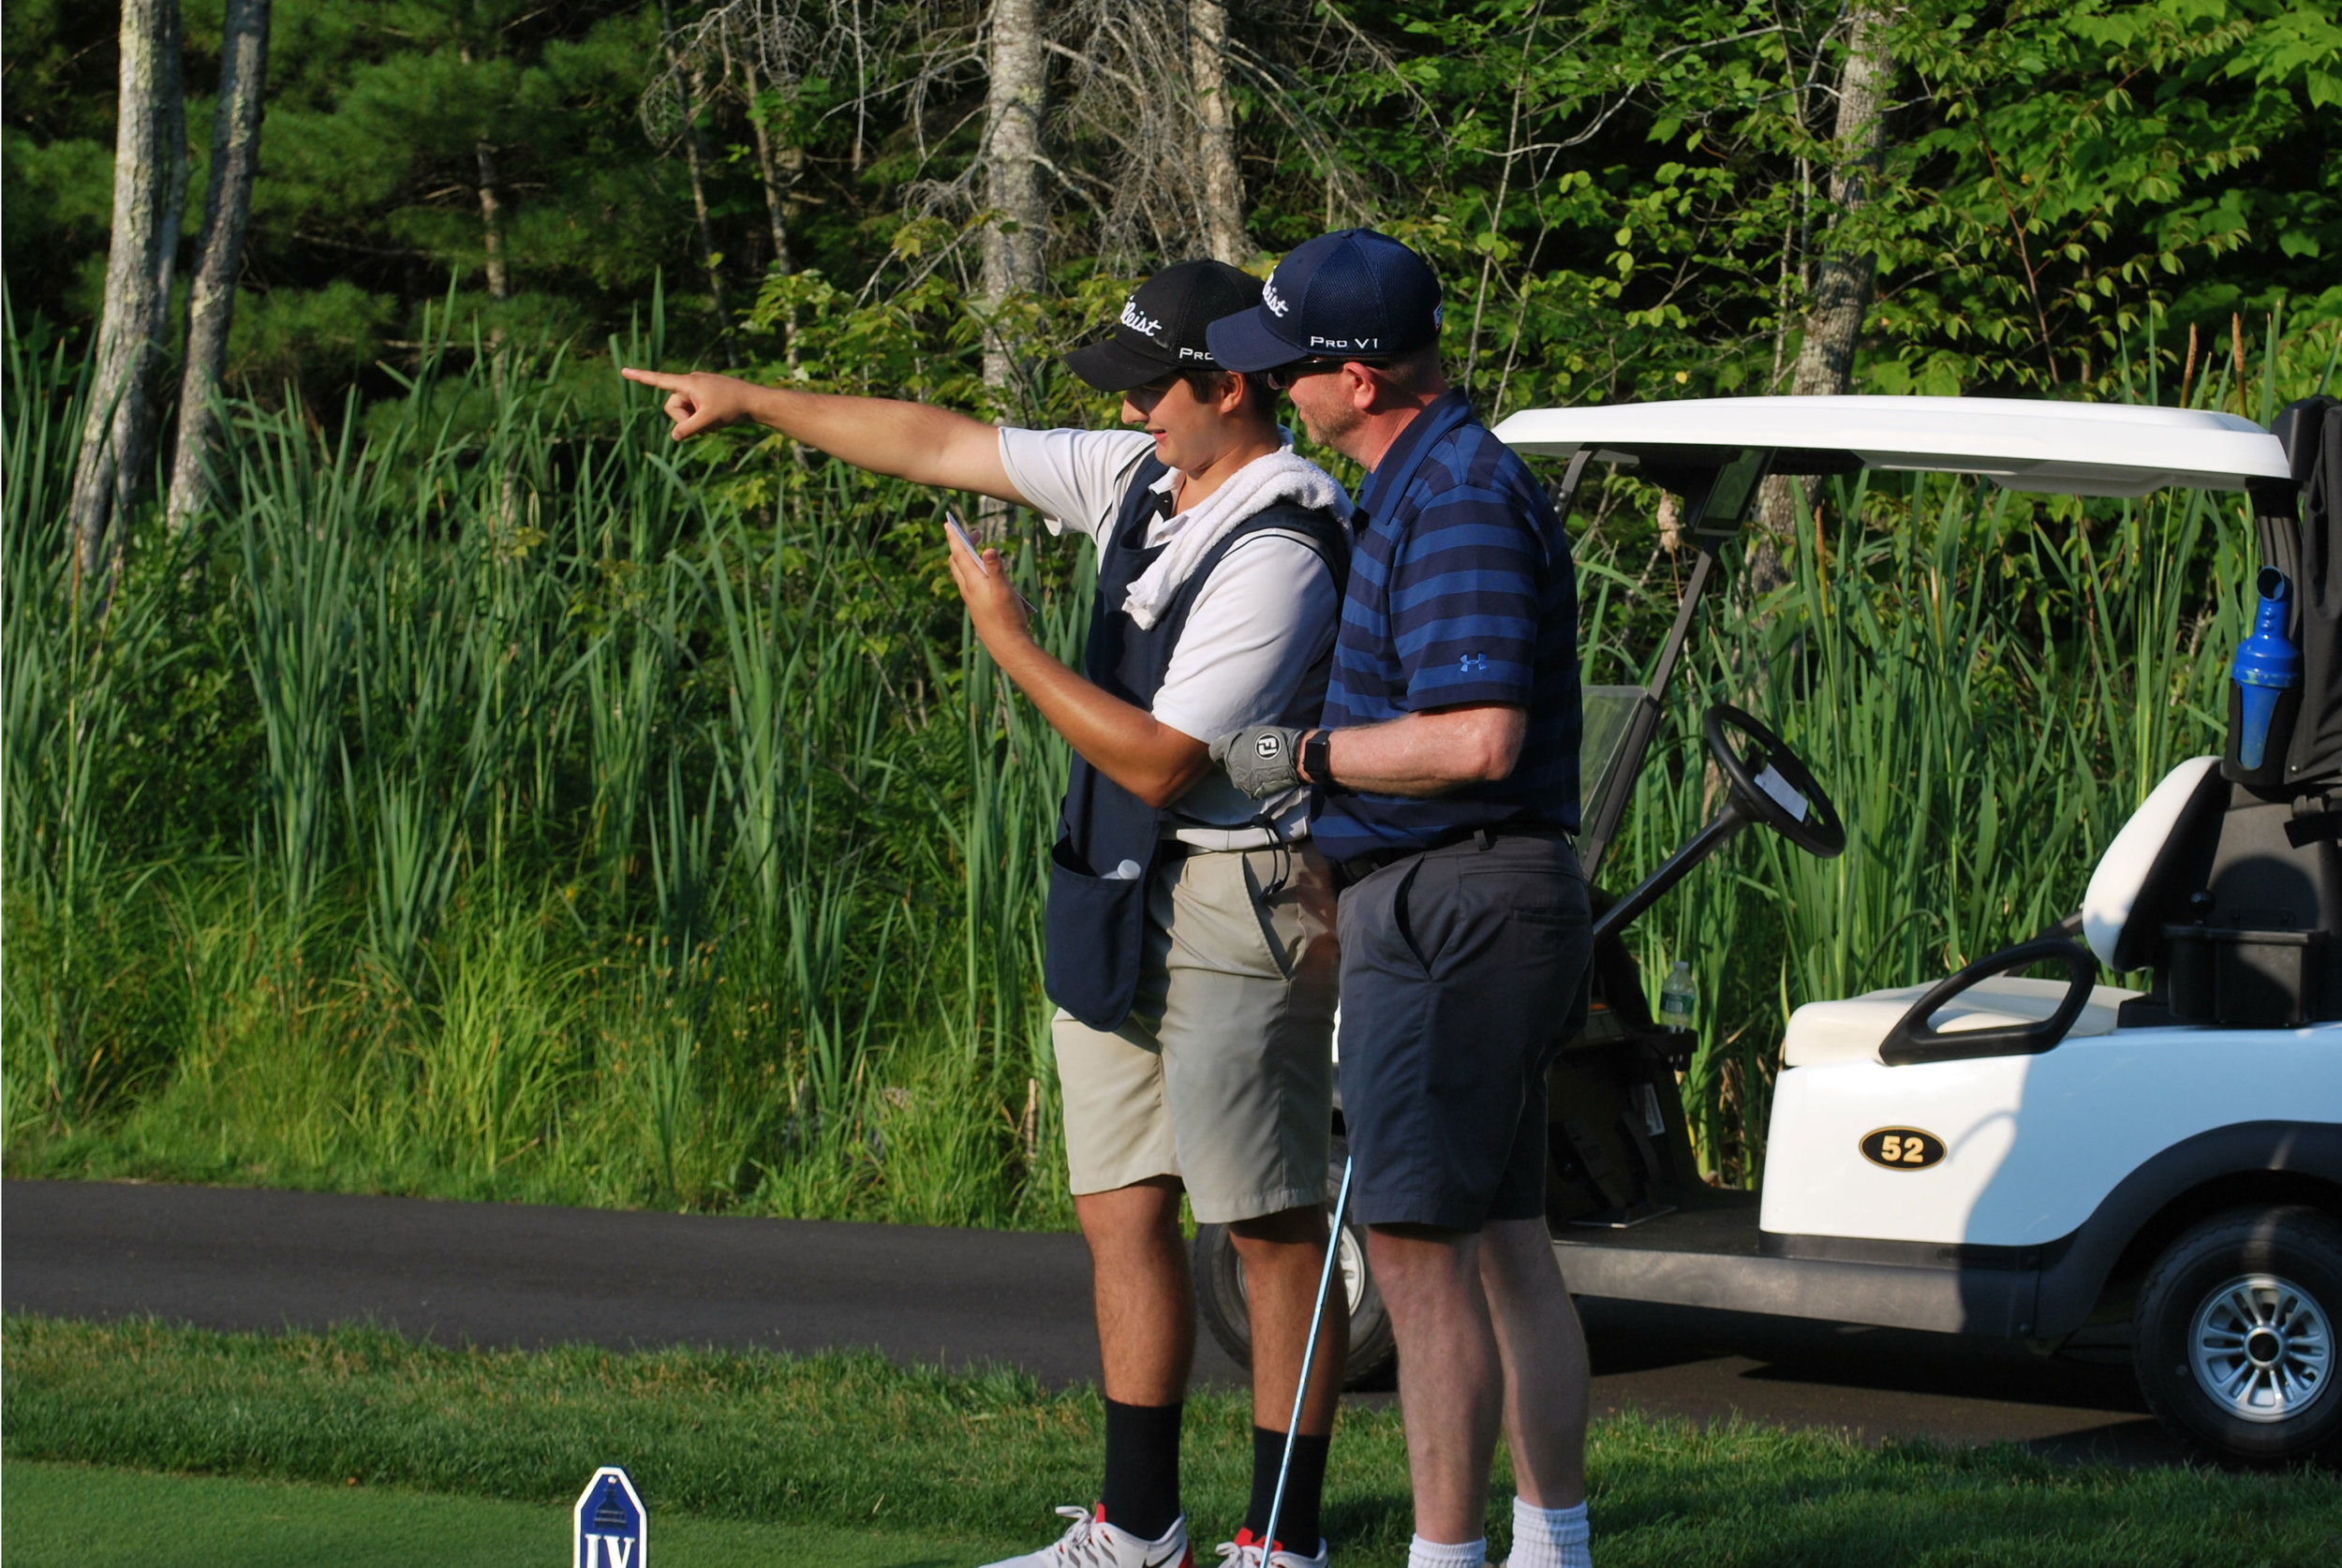 Caddie services are available by request. Walking caddies and forecaddies add another level to any golfing experience. Help finding the occasional errant tee shot or another set of eyes on a difficult putt can really help your score at the end of the round.